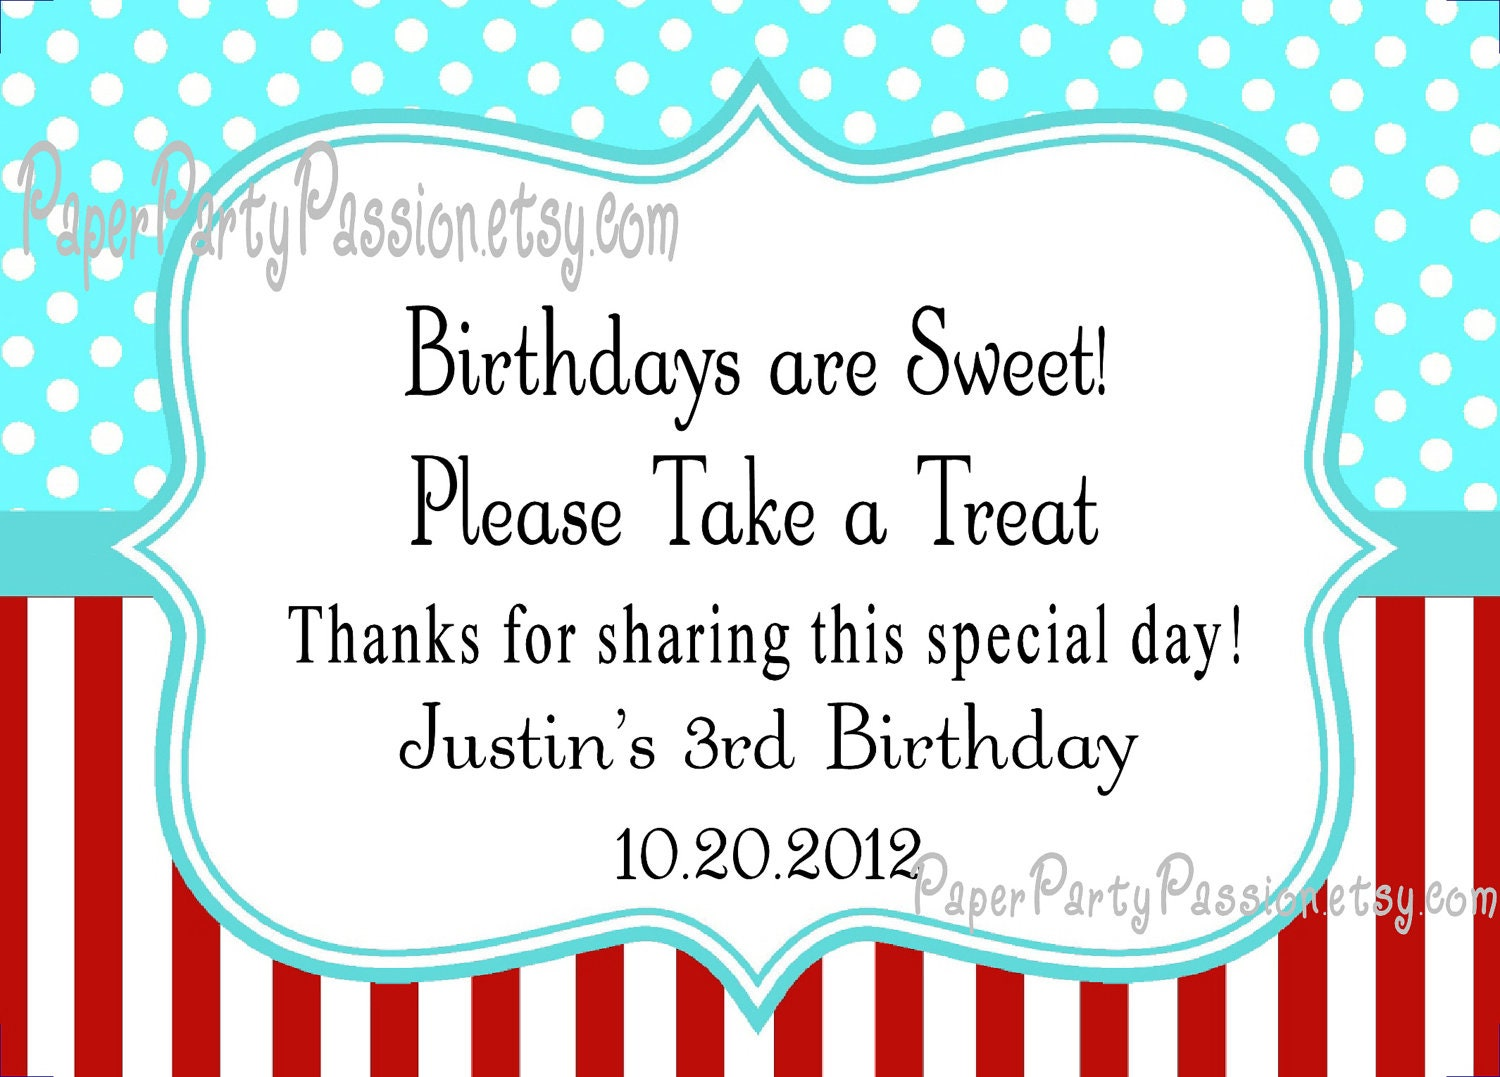 photograph regarding Free Printable Candy Buffet Signs titled Cost-free Printable Carnival Indicators Tattoo : Totally free Printable